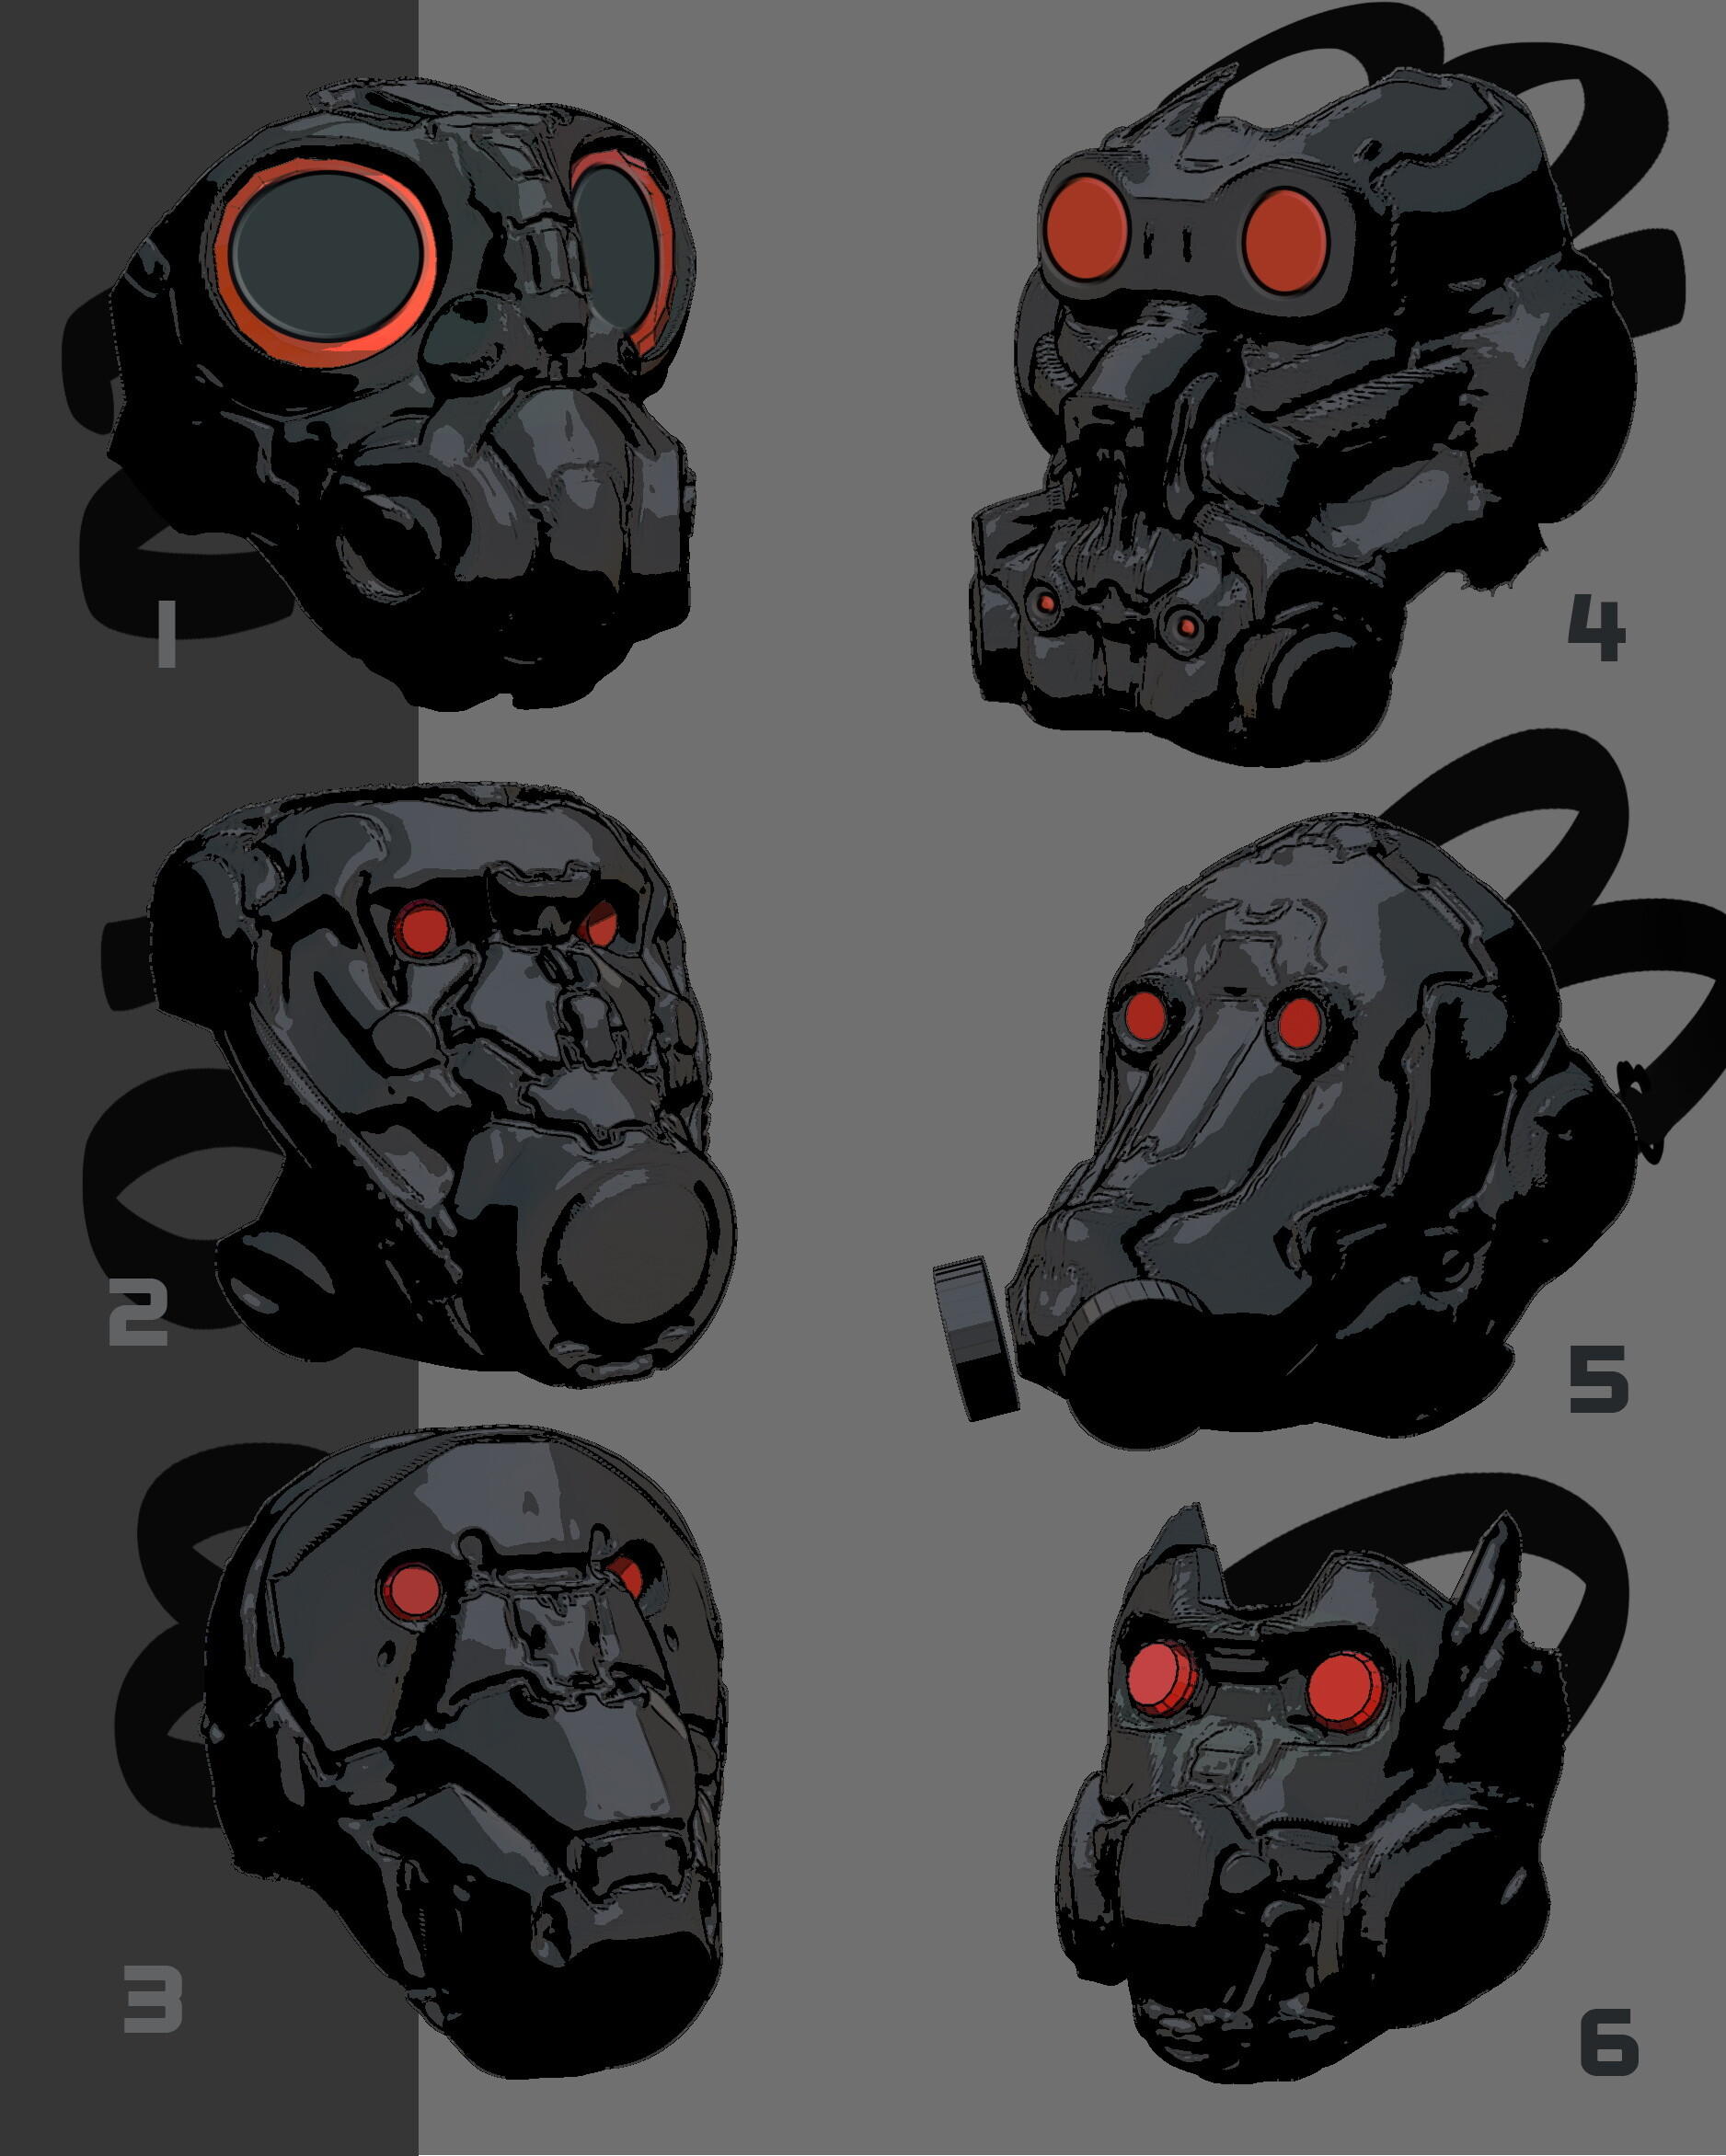 Initial 3D Concepts. Number 4 Was Voted.